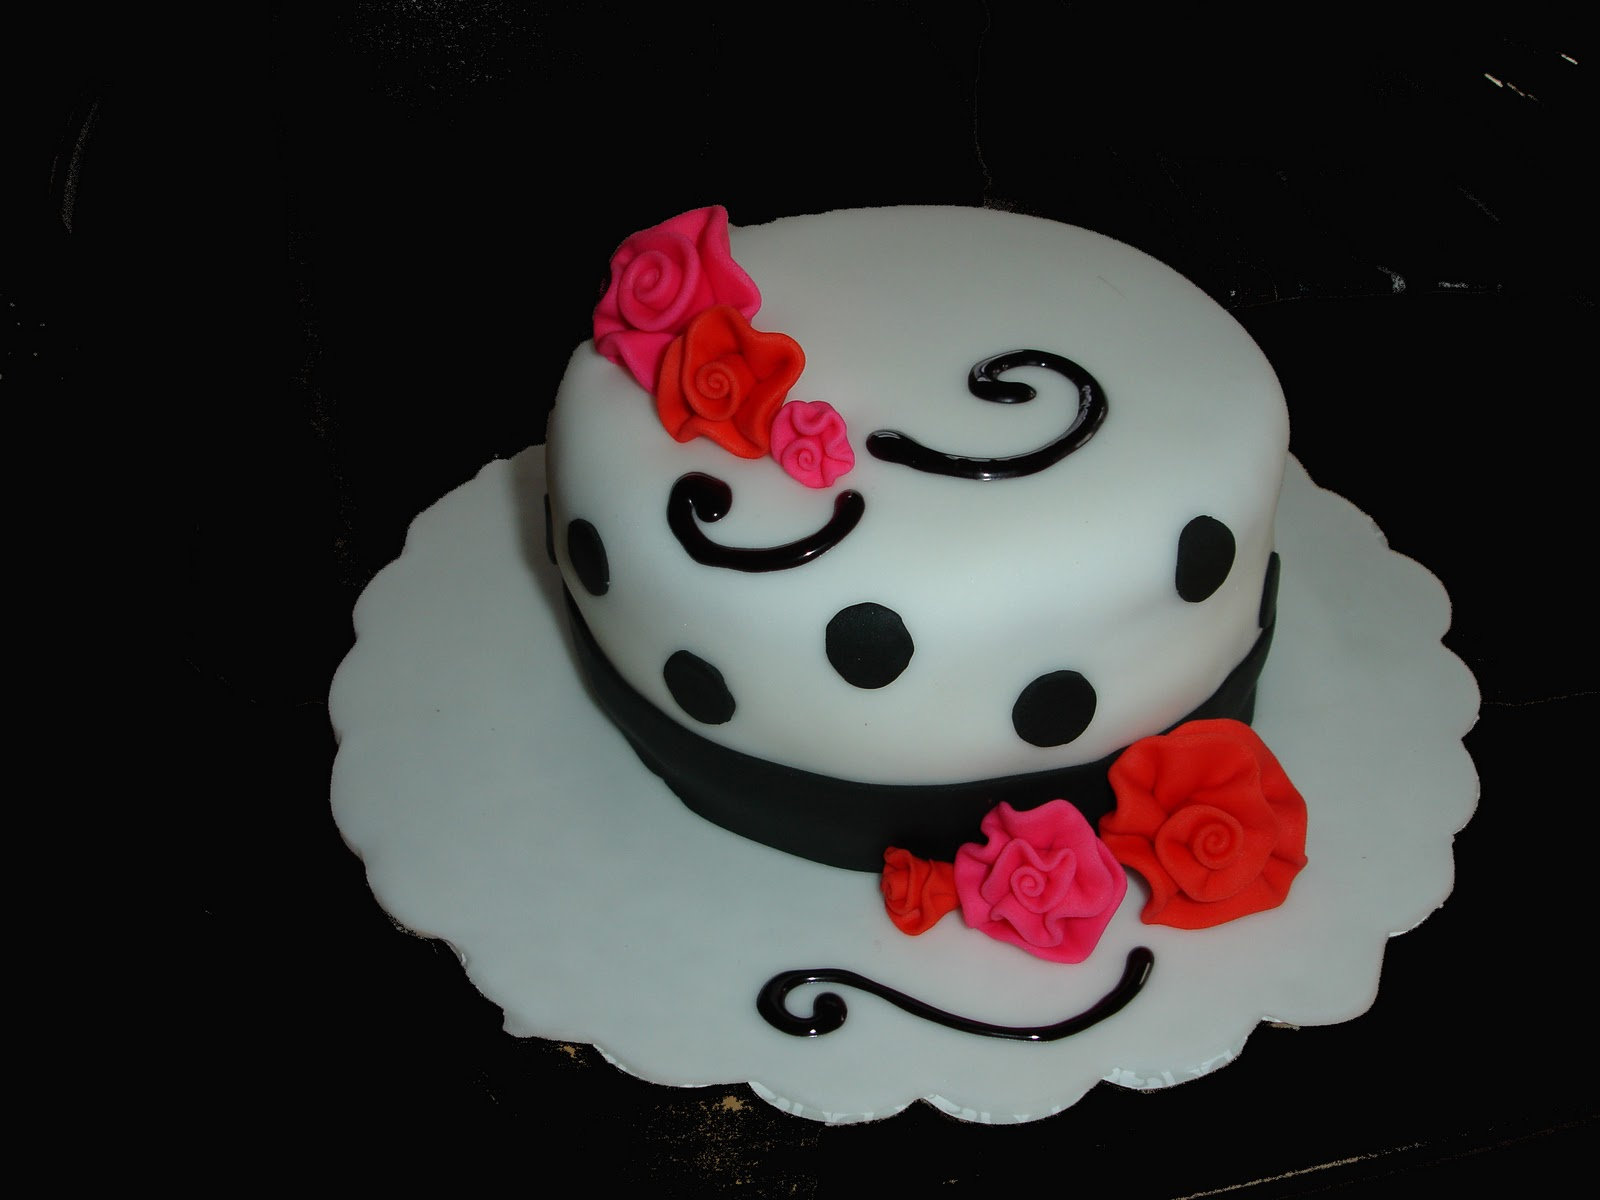 Cake Decorating Classes Gainesville Fl : Sugar and Spice: Wilton cake decorating class II